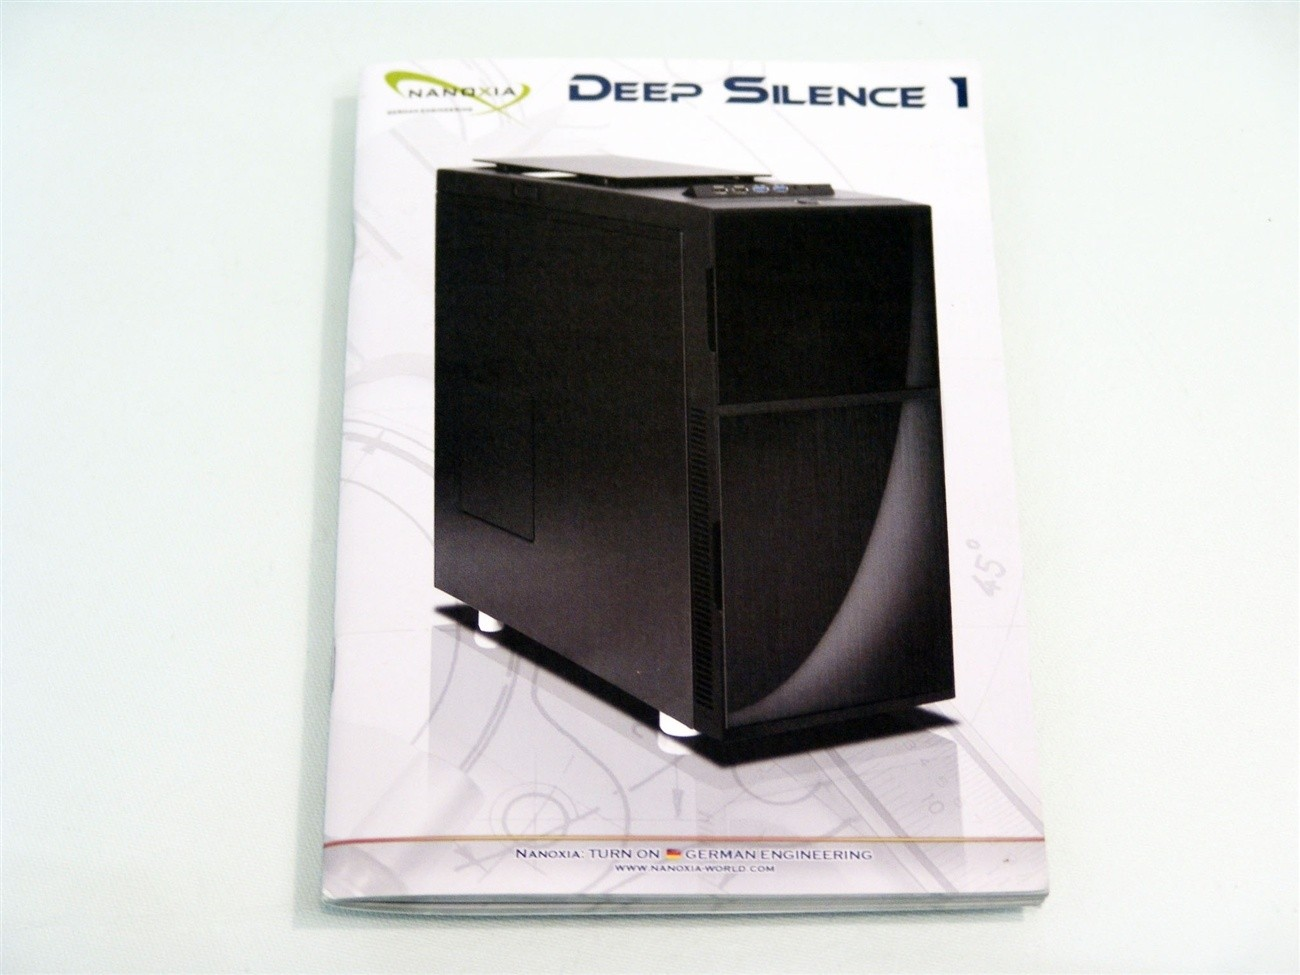 nanoxia_deep_silence_ds1_mid_tower_chassis_review